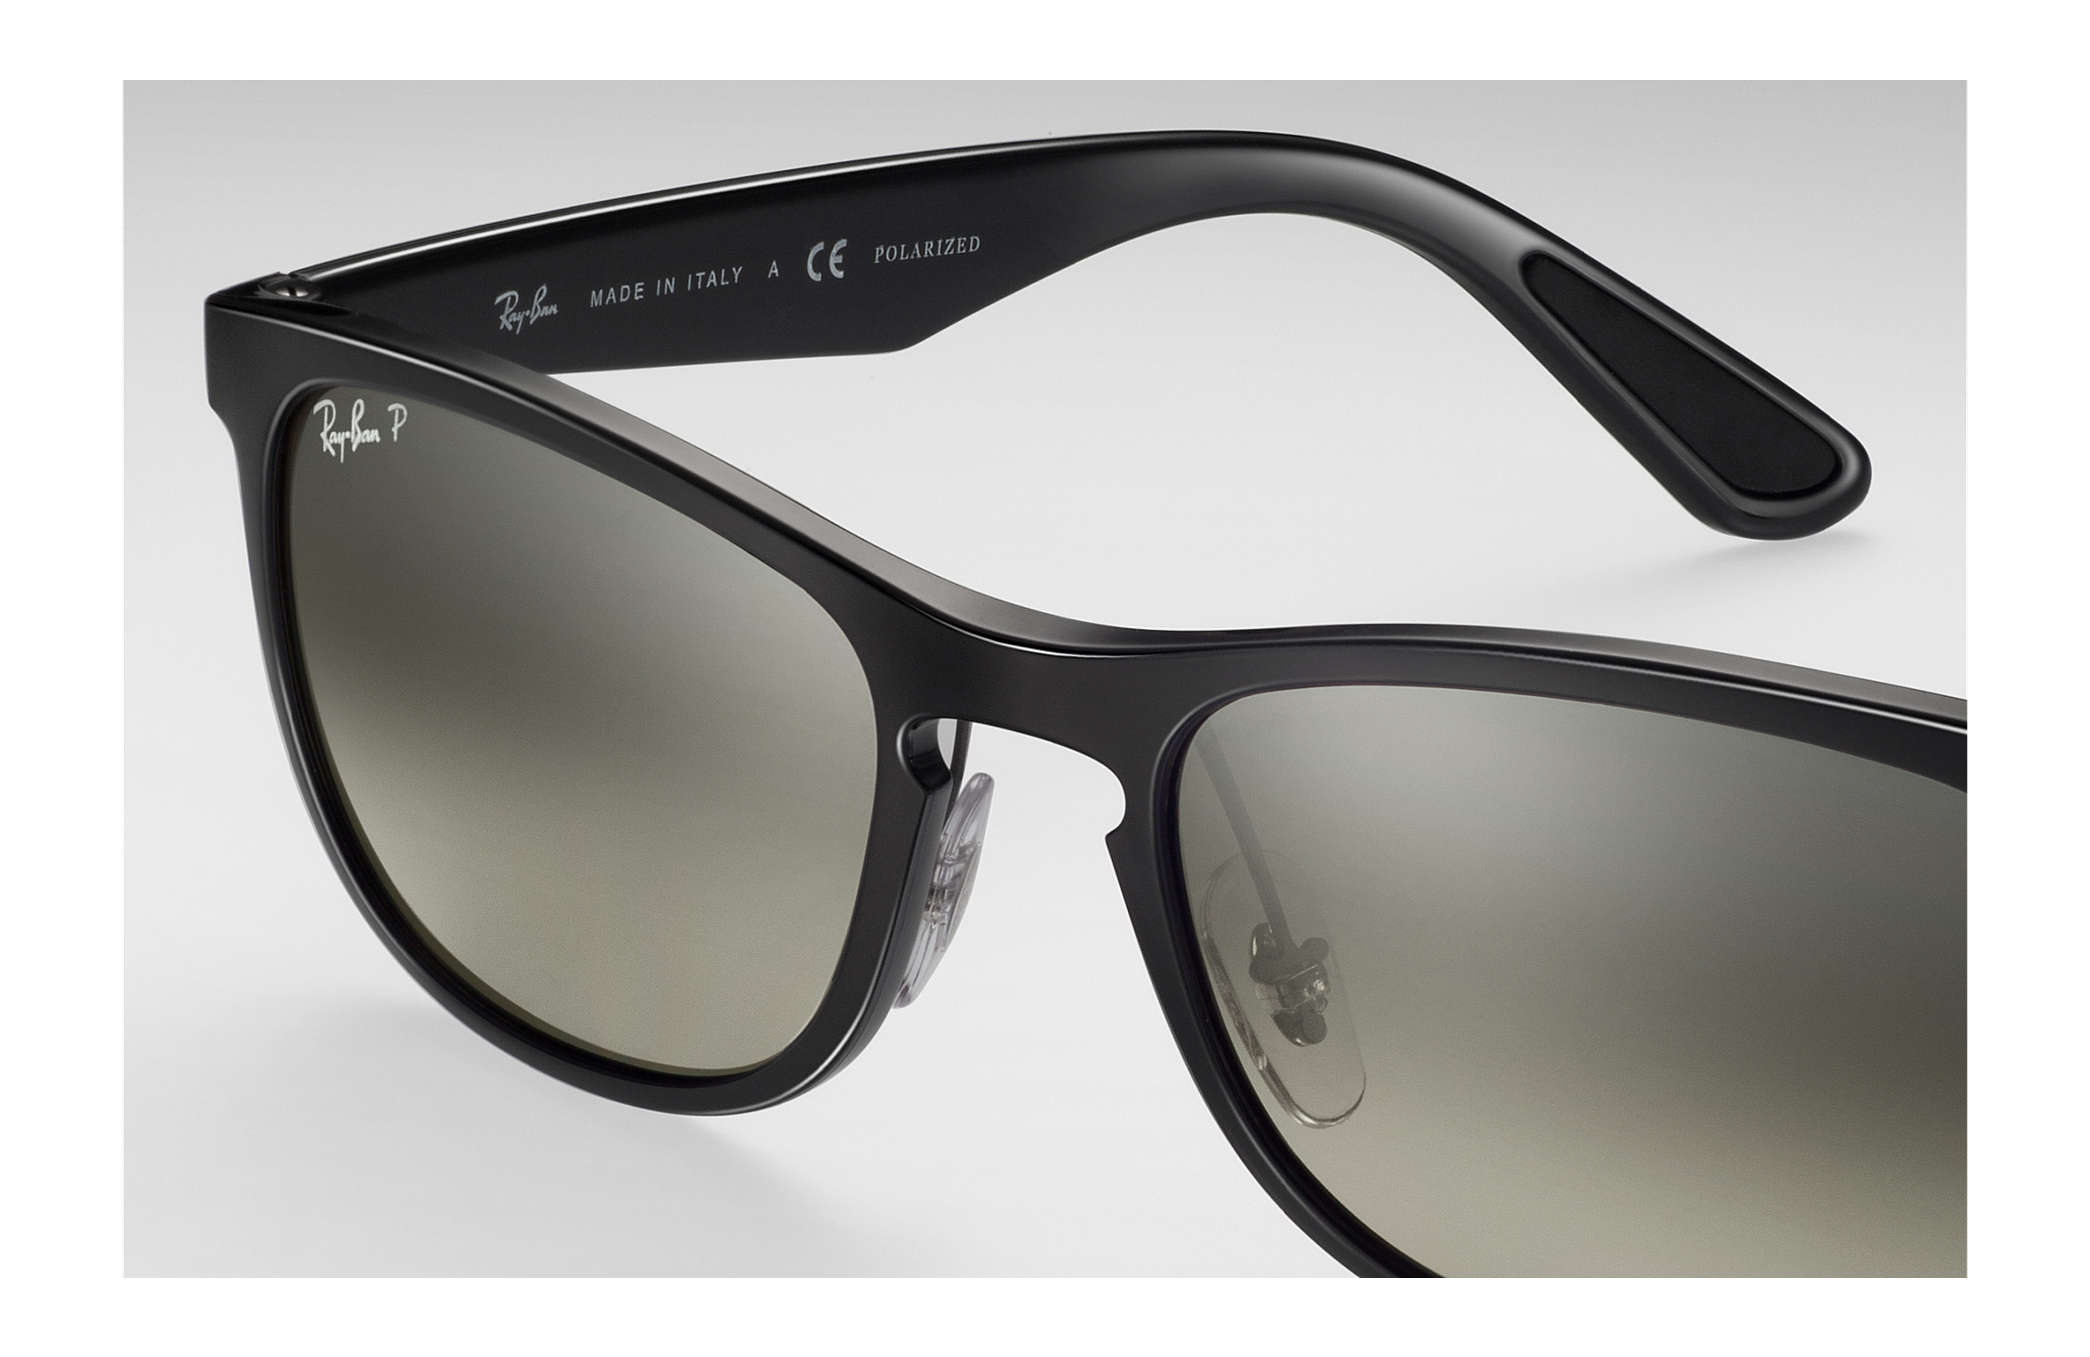 ad0a17c39c ... are ray bans made in italy,Ray-Ban 0RB4263-RB4263 Chromance Black SUN  ...